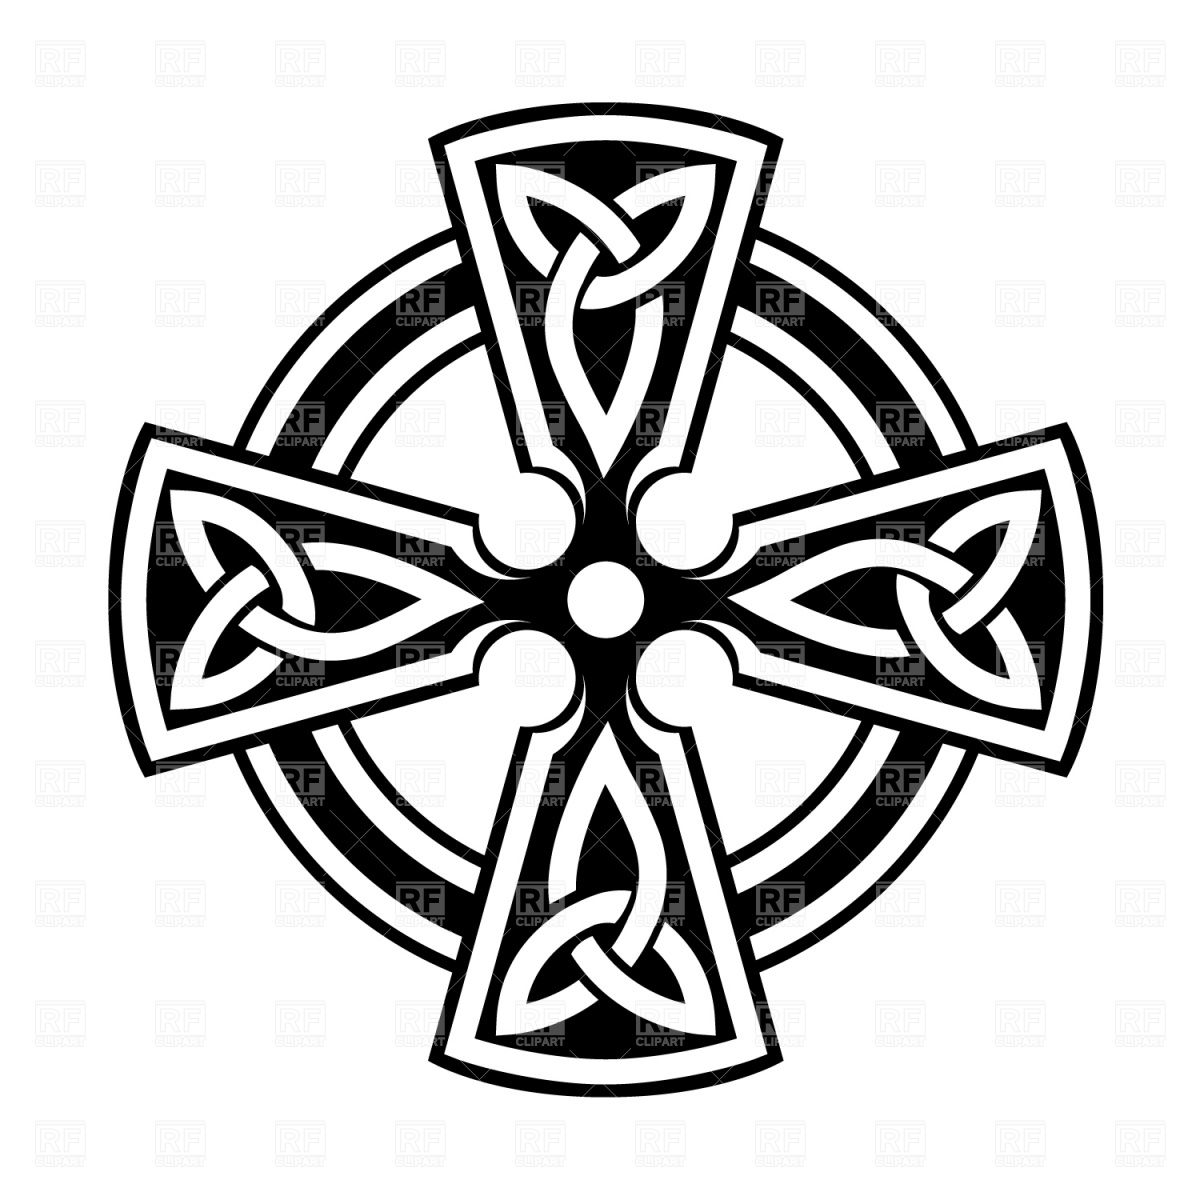 Free celtic symbols celtic cross 3 nate brumfield original free celtic symbols celtic cross 3 biocorpaavc Choice Image